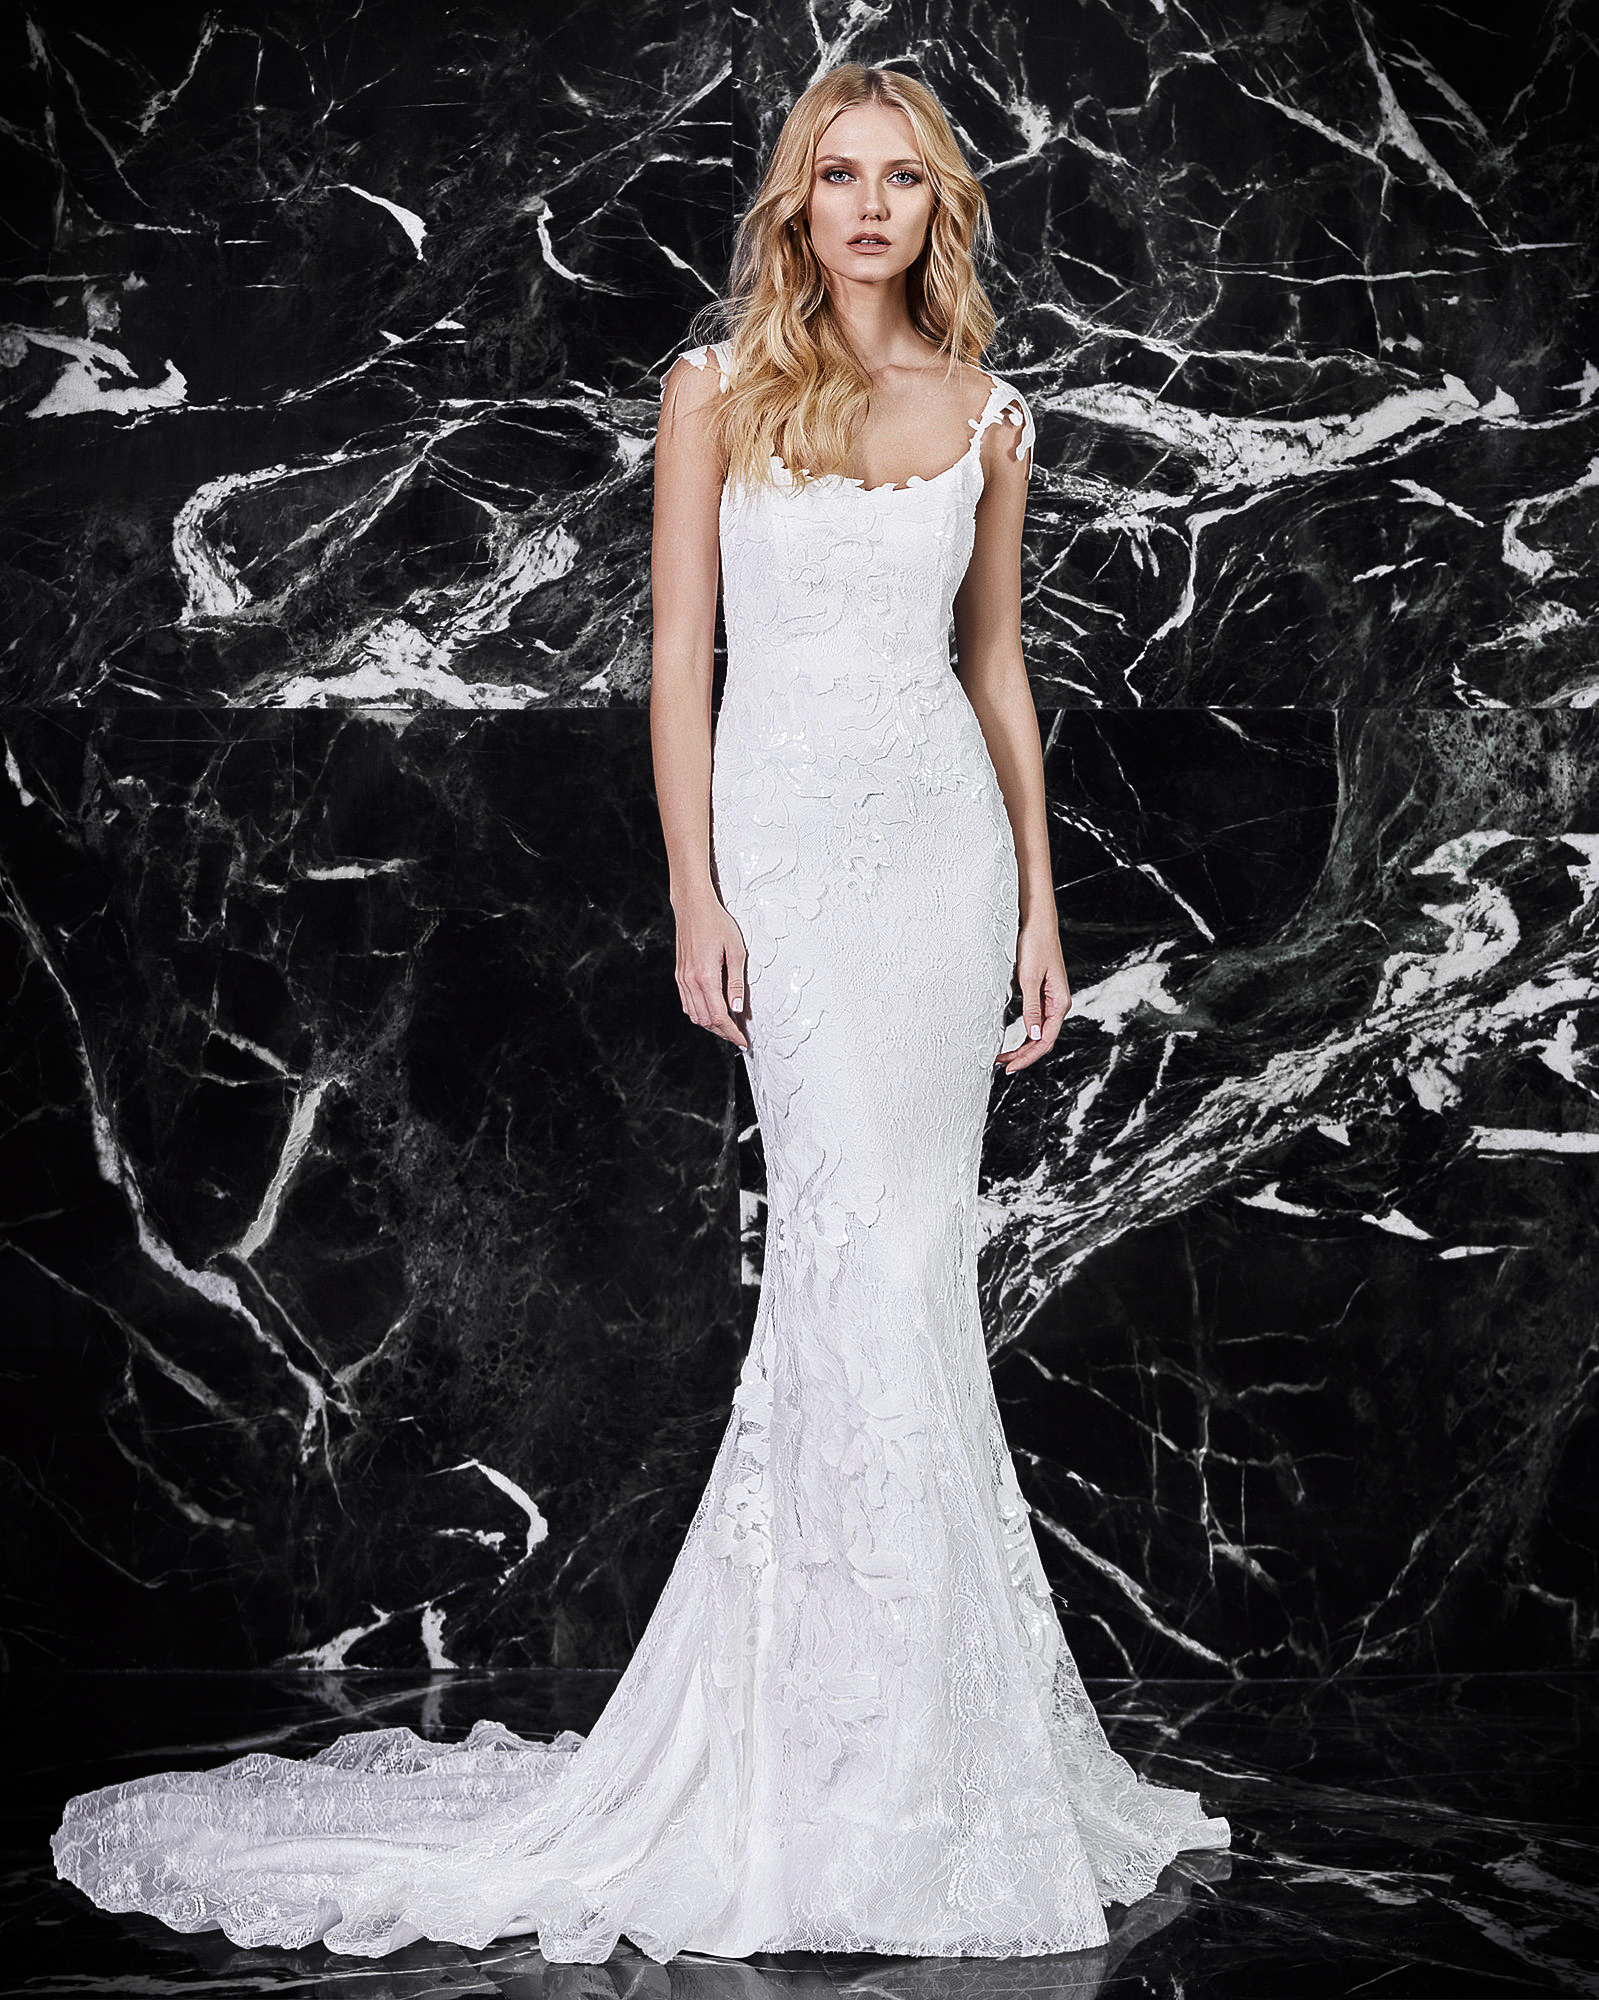 victoria kyriakides floral wedding dress spring 2018